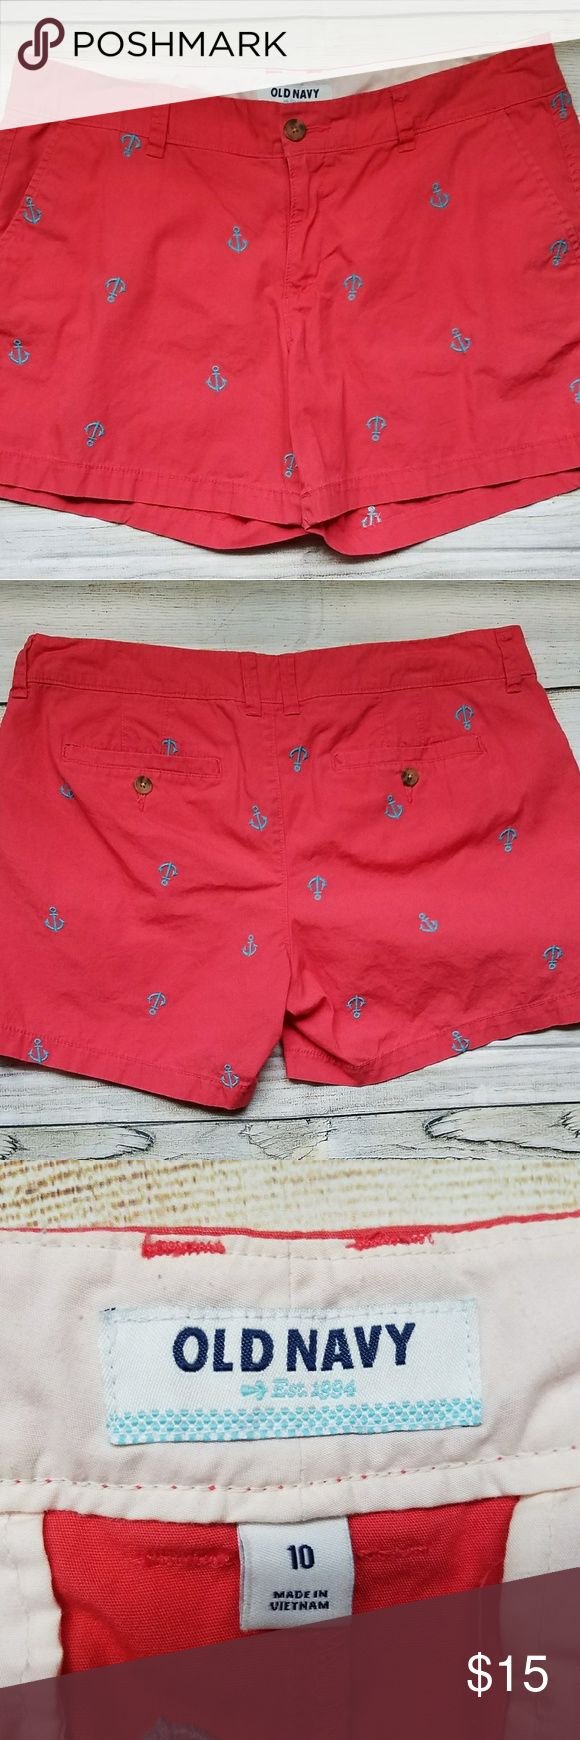 Old Navy Coral Anchor Shorts Sz 10 Nice pair of shorts great for Summer and the beach. Embroidered teal anchors on coral shorts. Message me with any questions. Old Navy Shorts